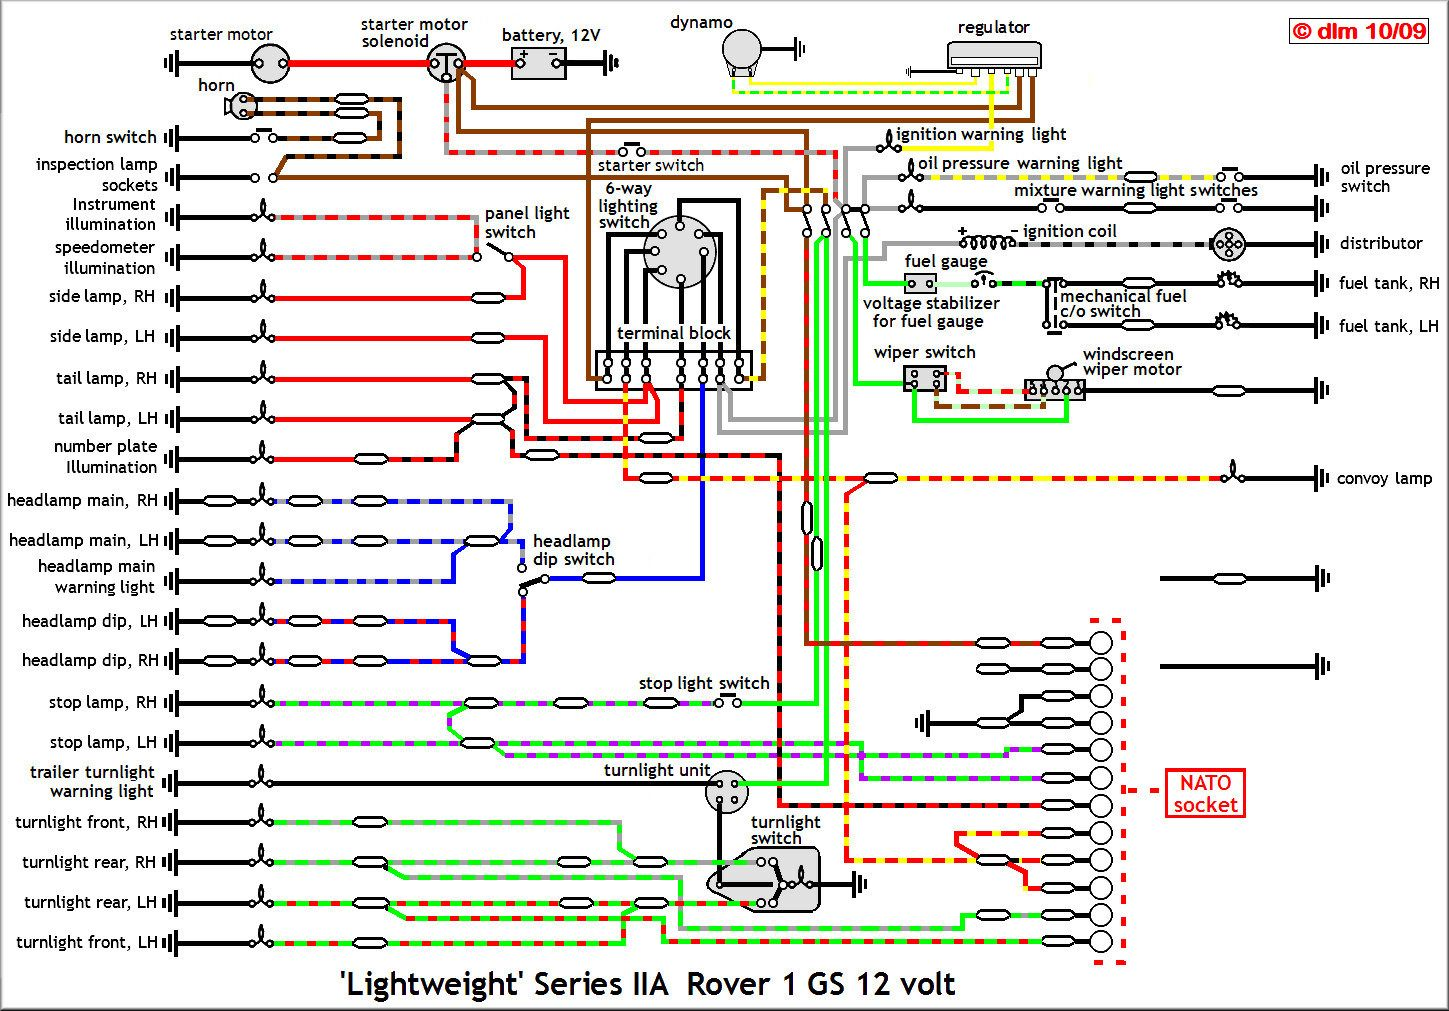 pin by arthur on land rover land rover series 3 land rover land rover series 3 24v wiring diagram land rover series 3 wiring diagram [ 1449 x 1011 Pixel ]